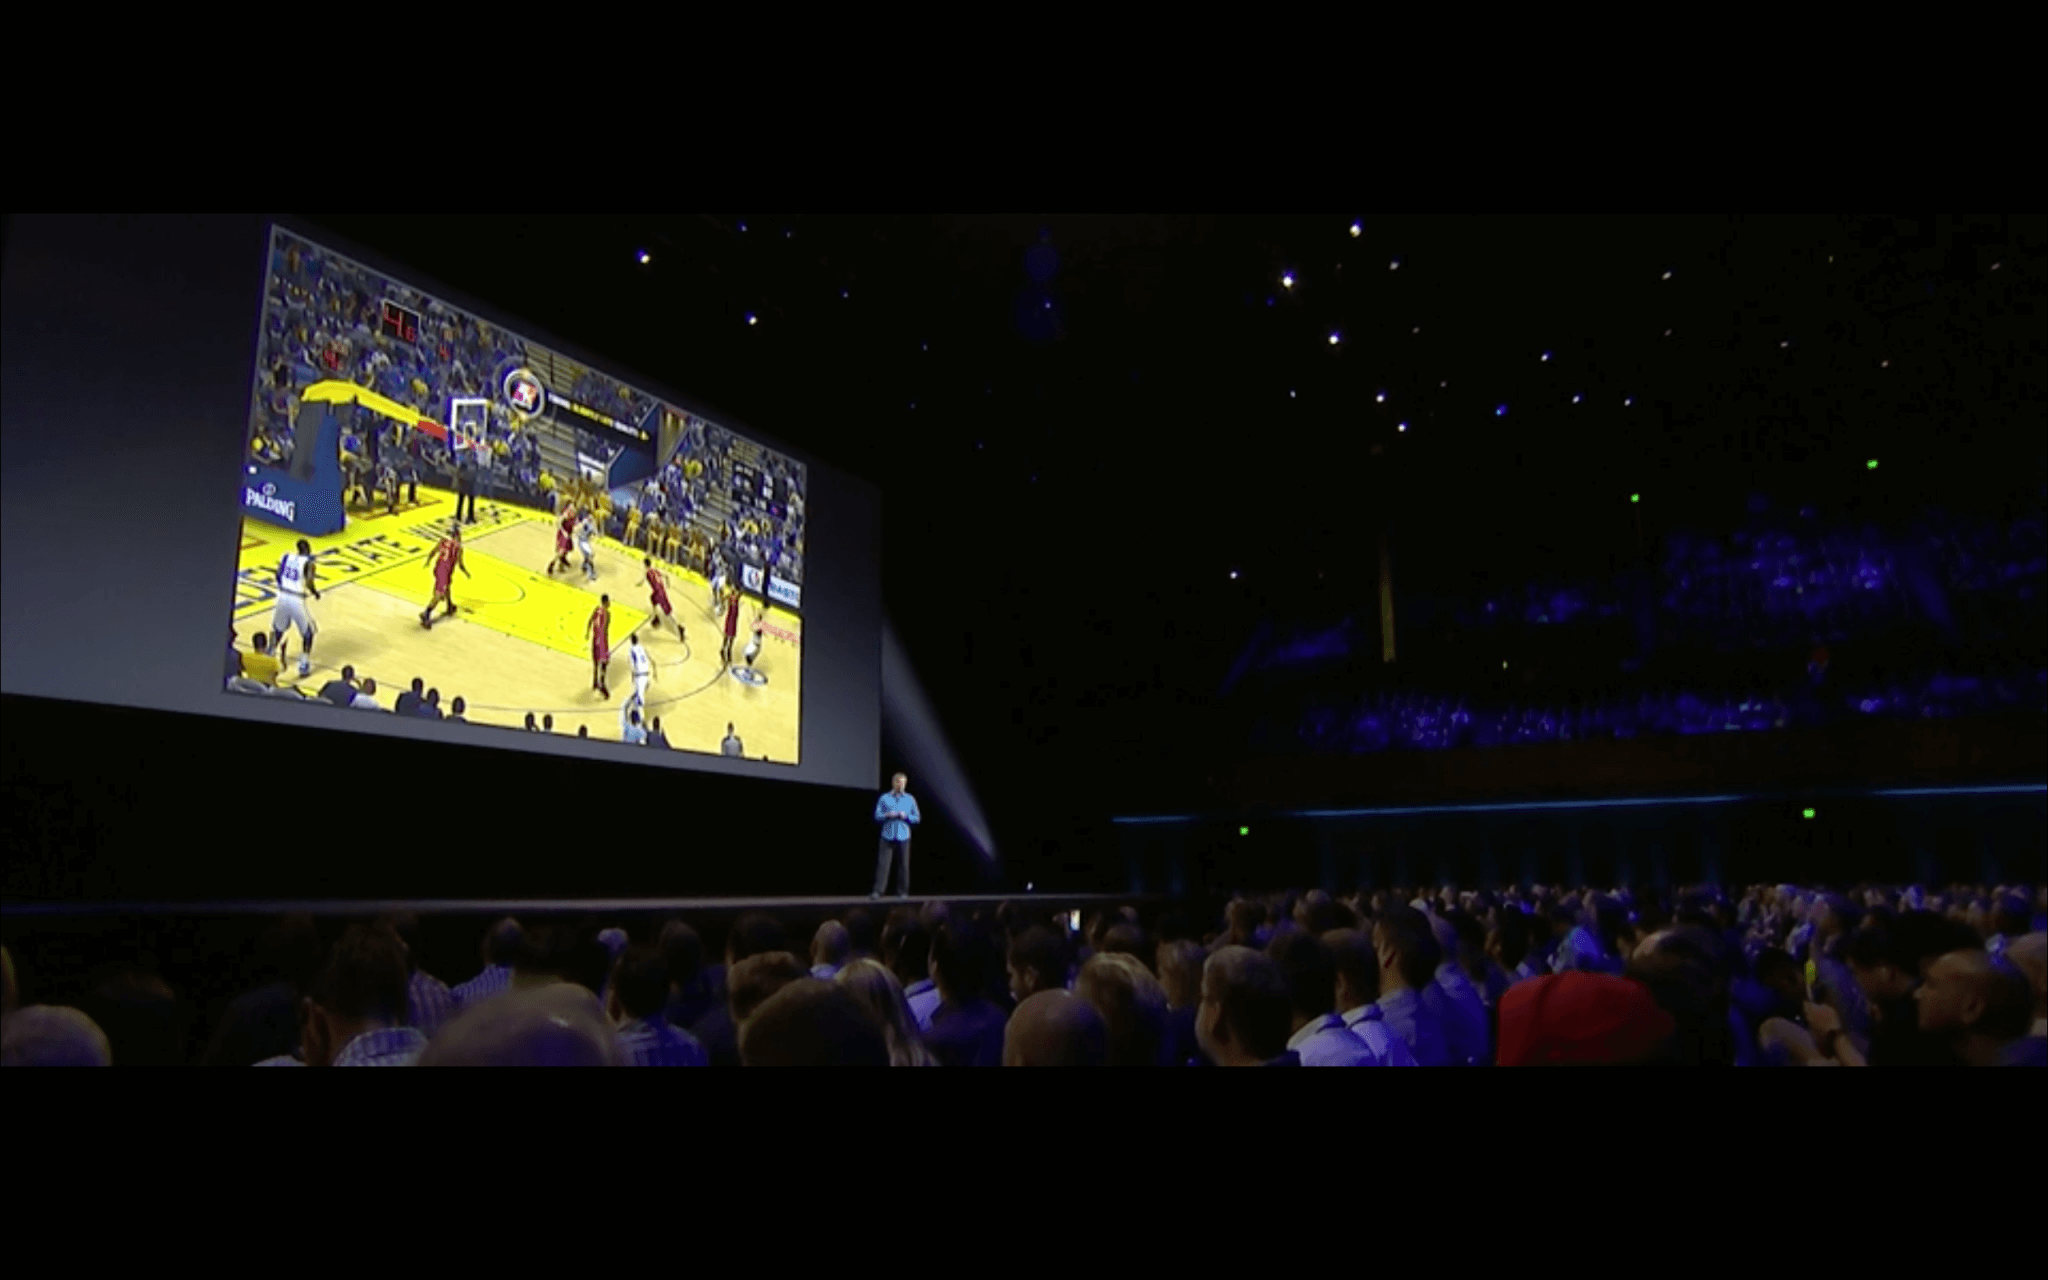 WWDC: NBA 2k kommt für s Apple TV (Screenshot von Apples Lifestream)